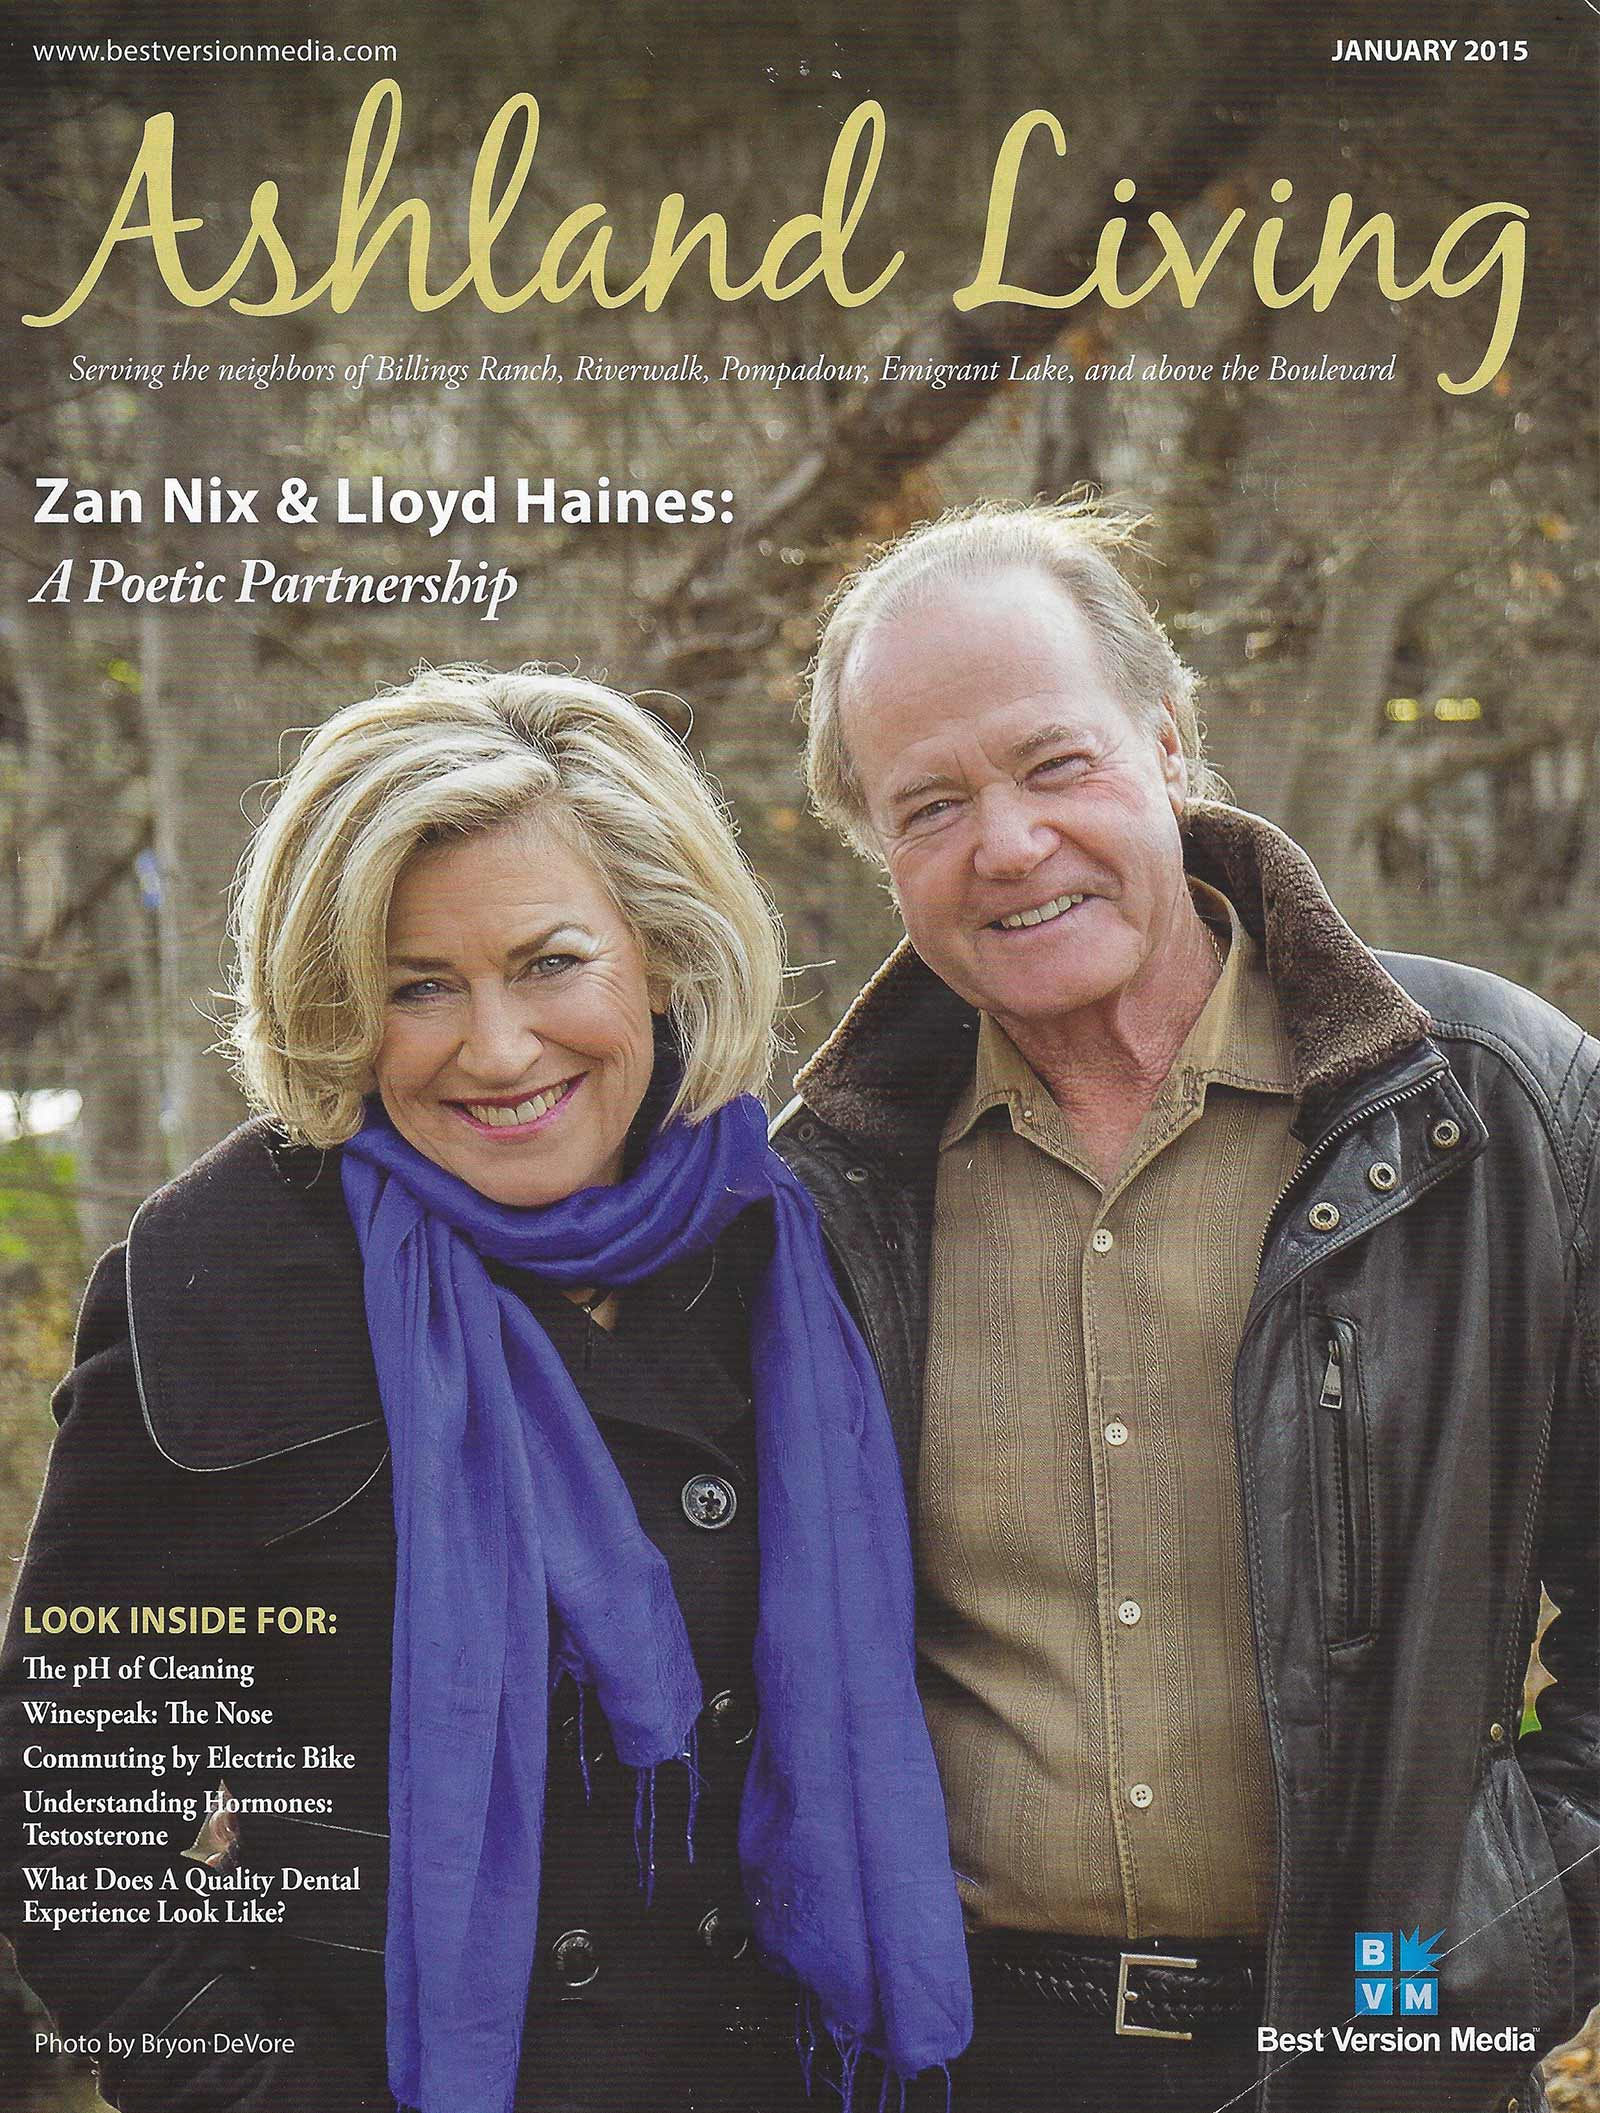 Ashland-Magazing-1